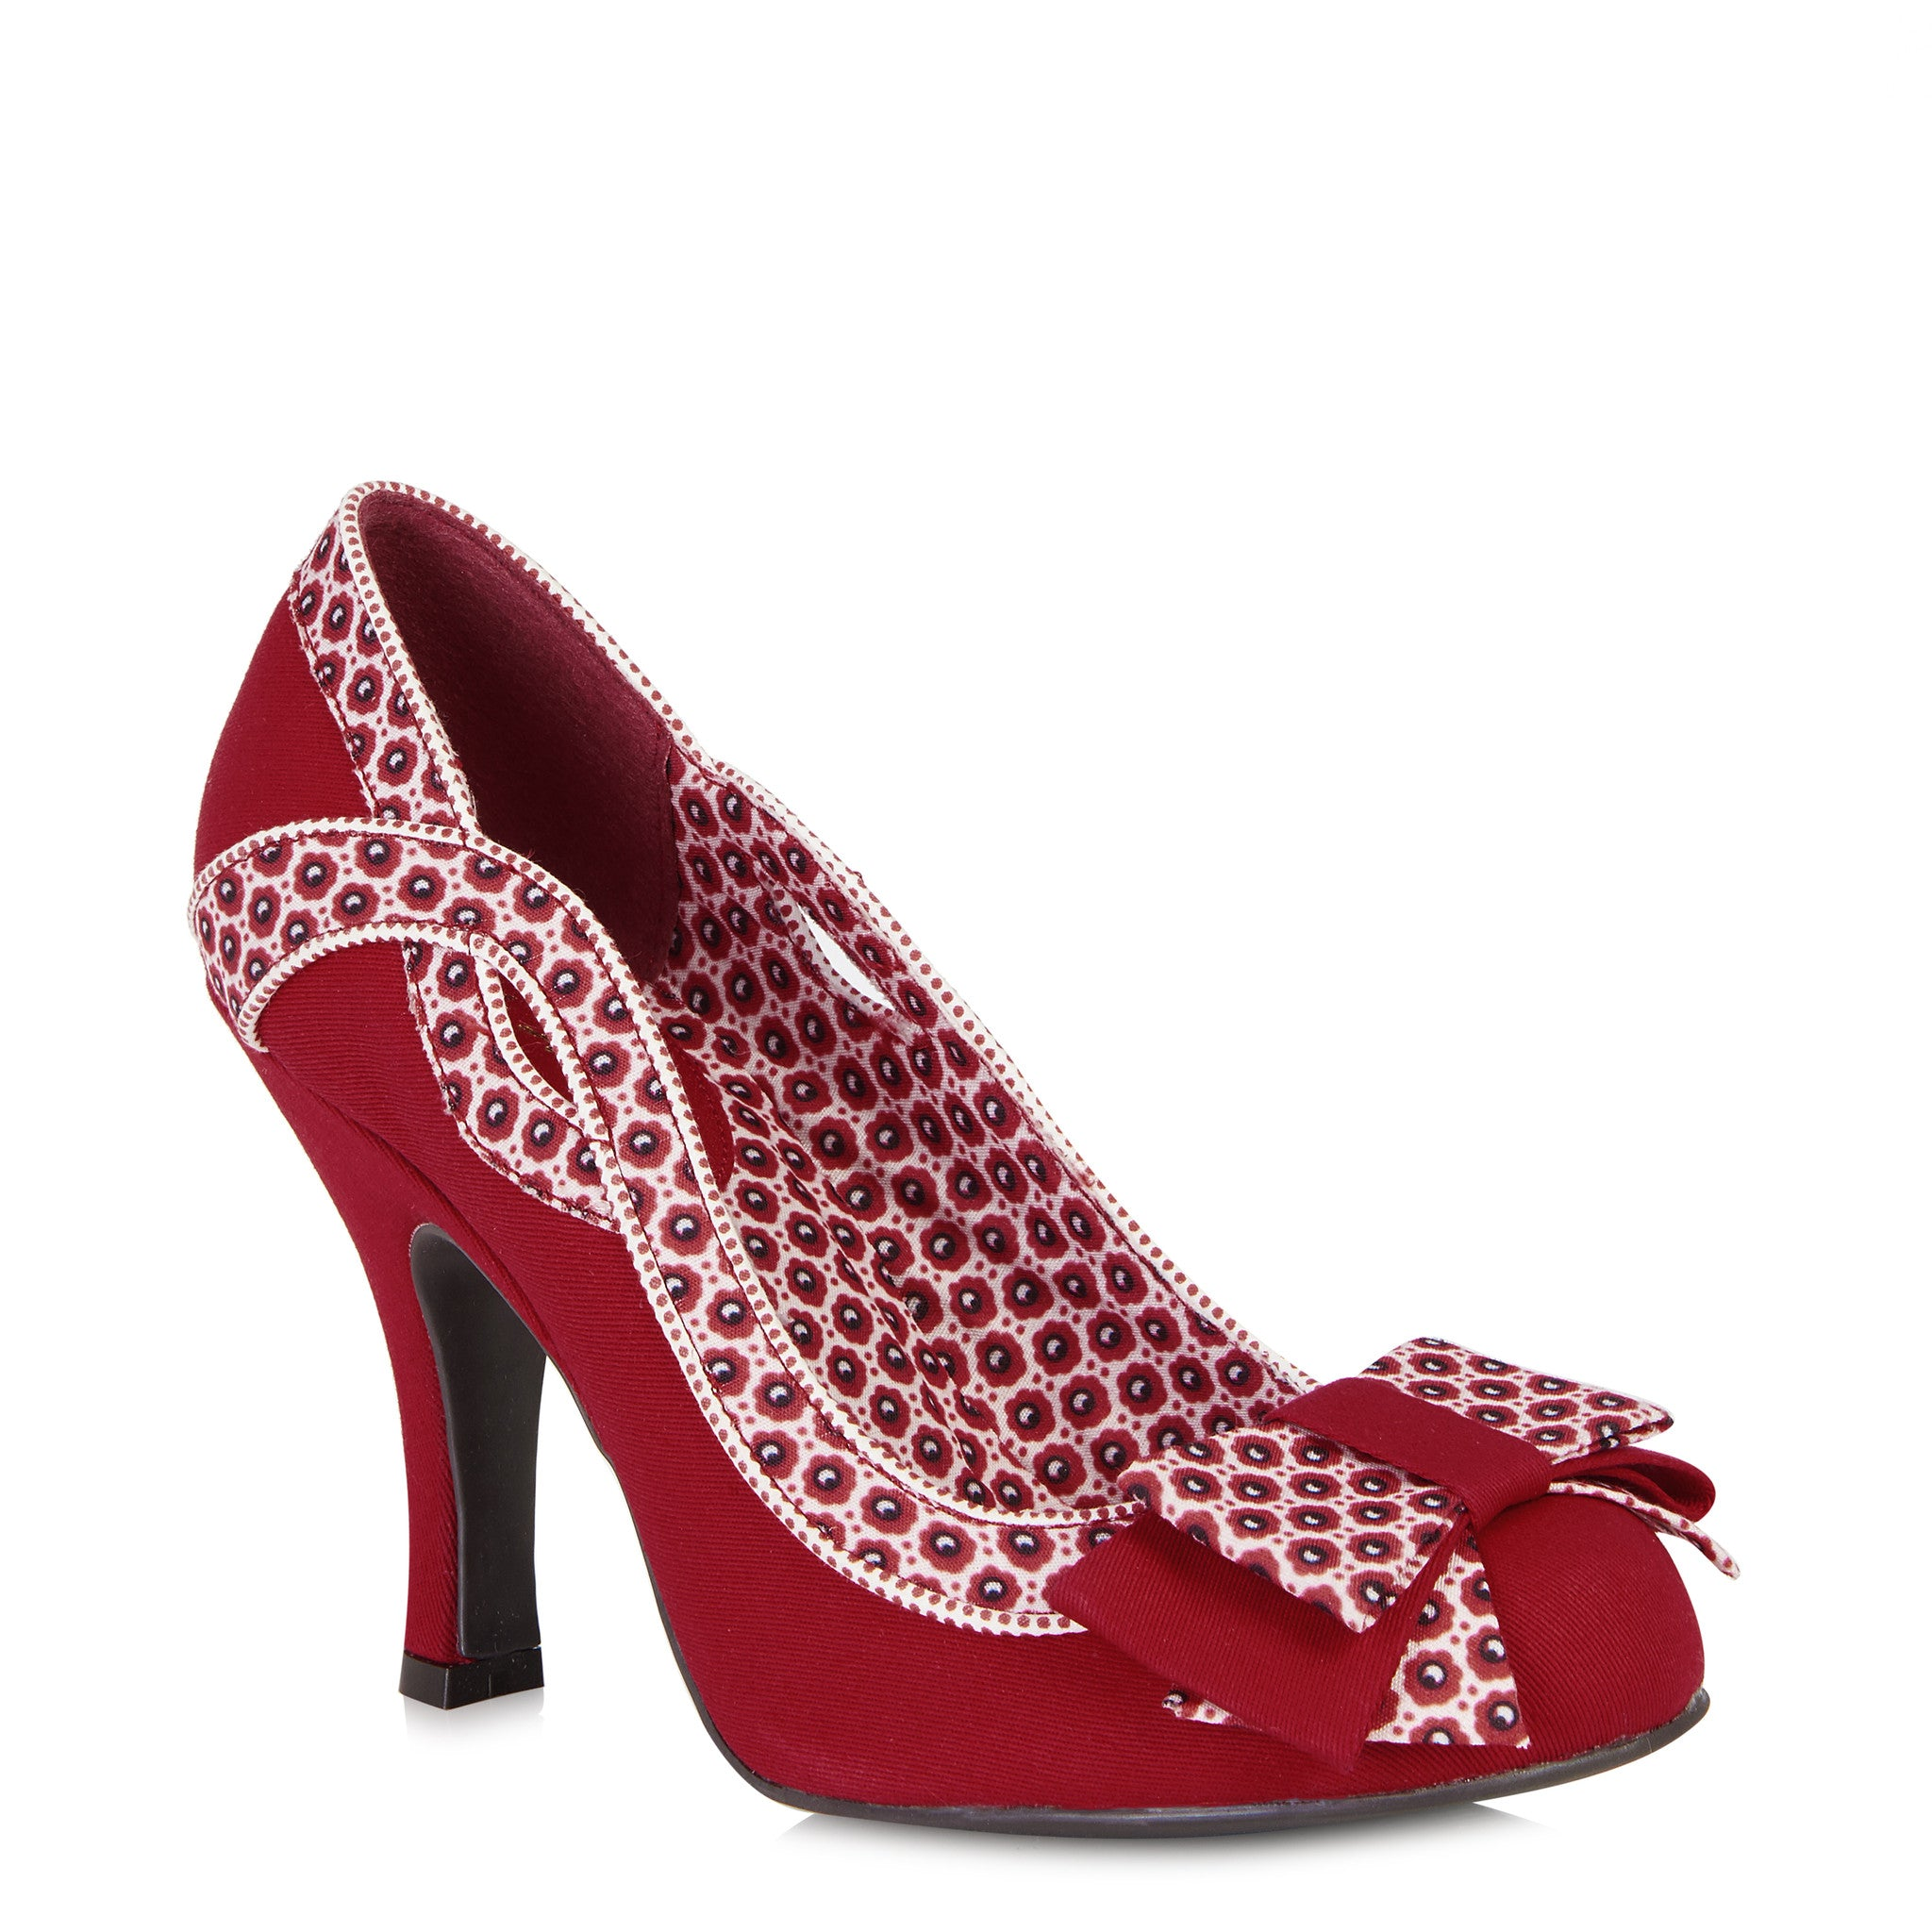 Ruby Shoo Ivy (Red/White)